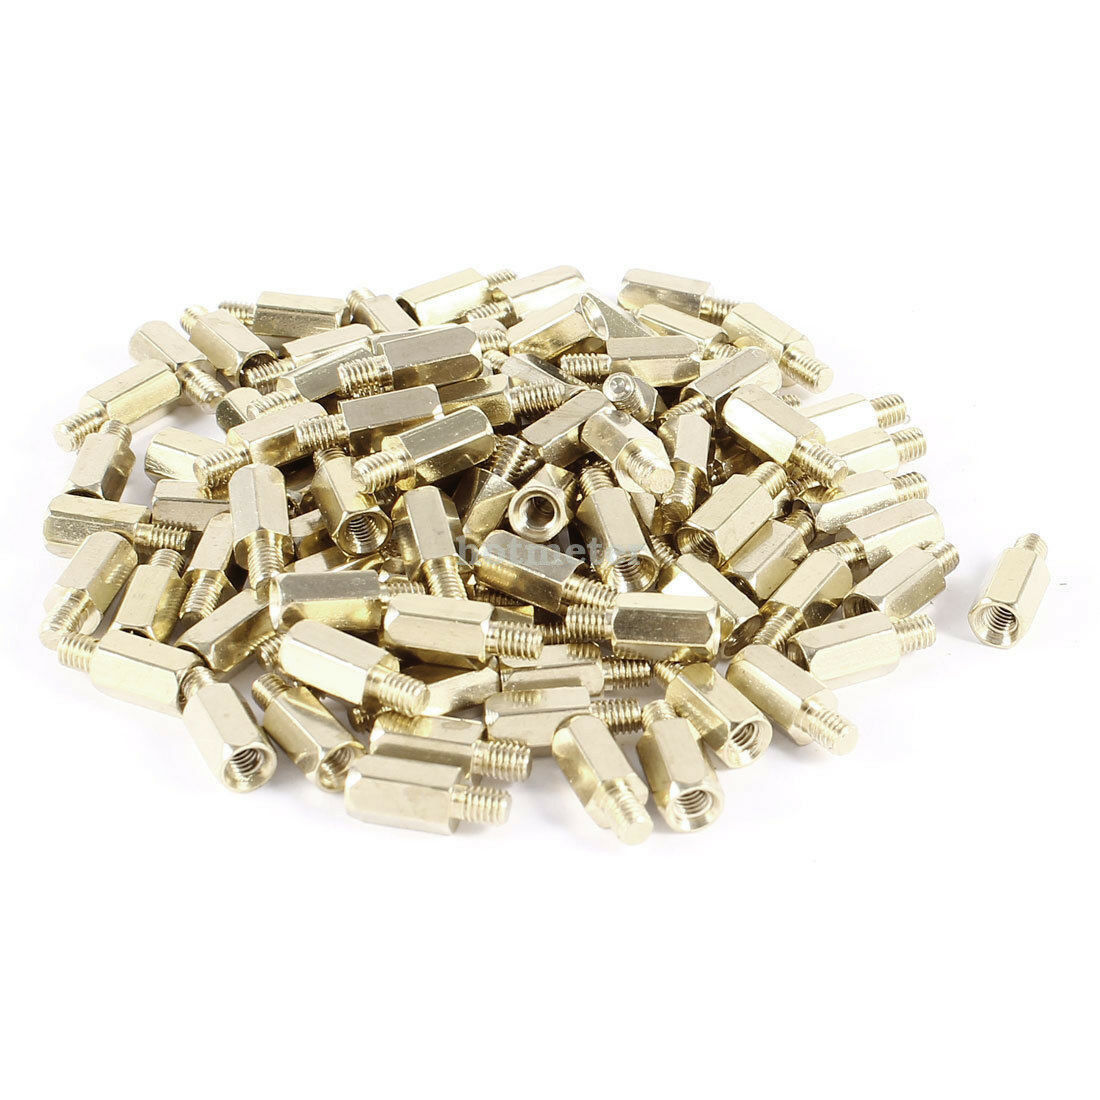 100pcs Pc Pcb Motherboard Brass Standoff Hexagonal Spacer M3 8 4mm 120pcs Copper Silver Pillars Circuit Board Nut 13 X 5mm Gold 1 Of 4free Shipping